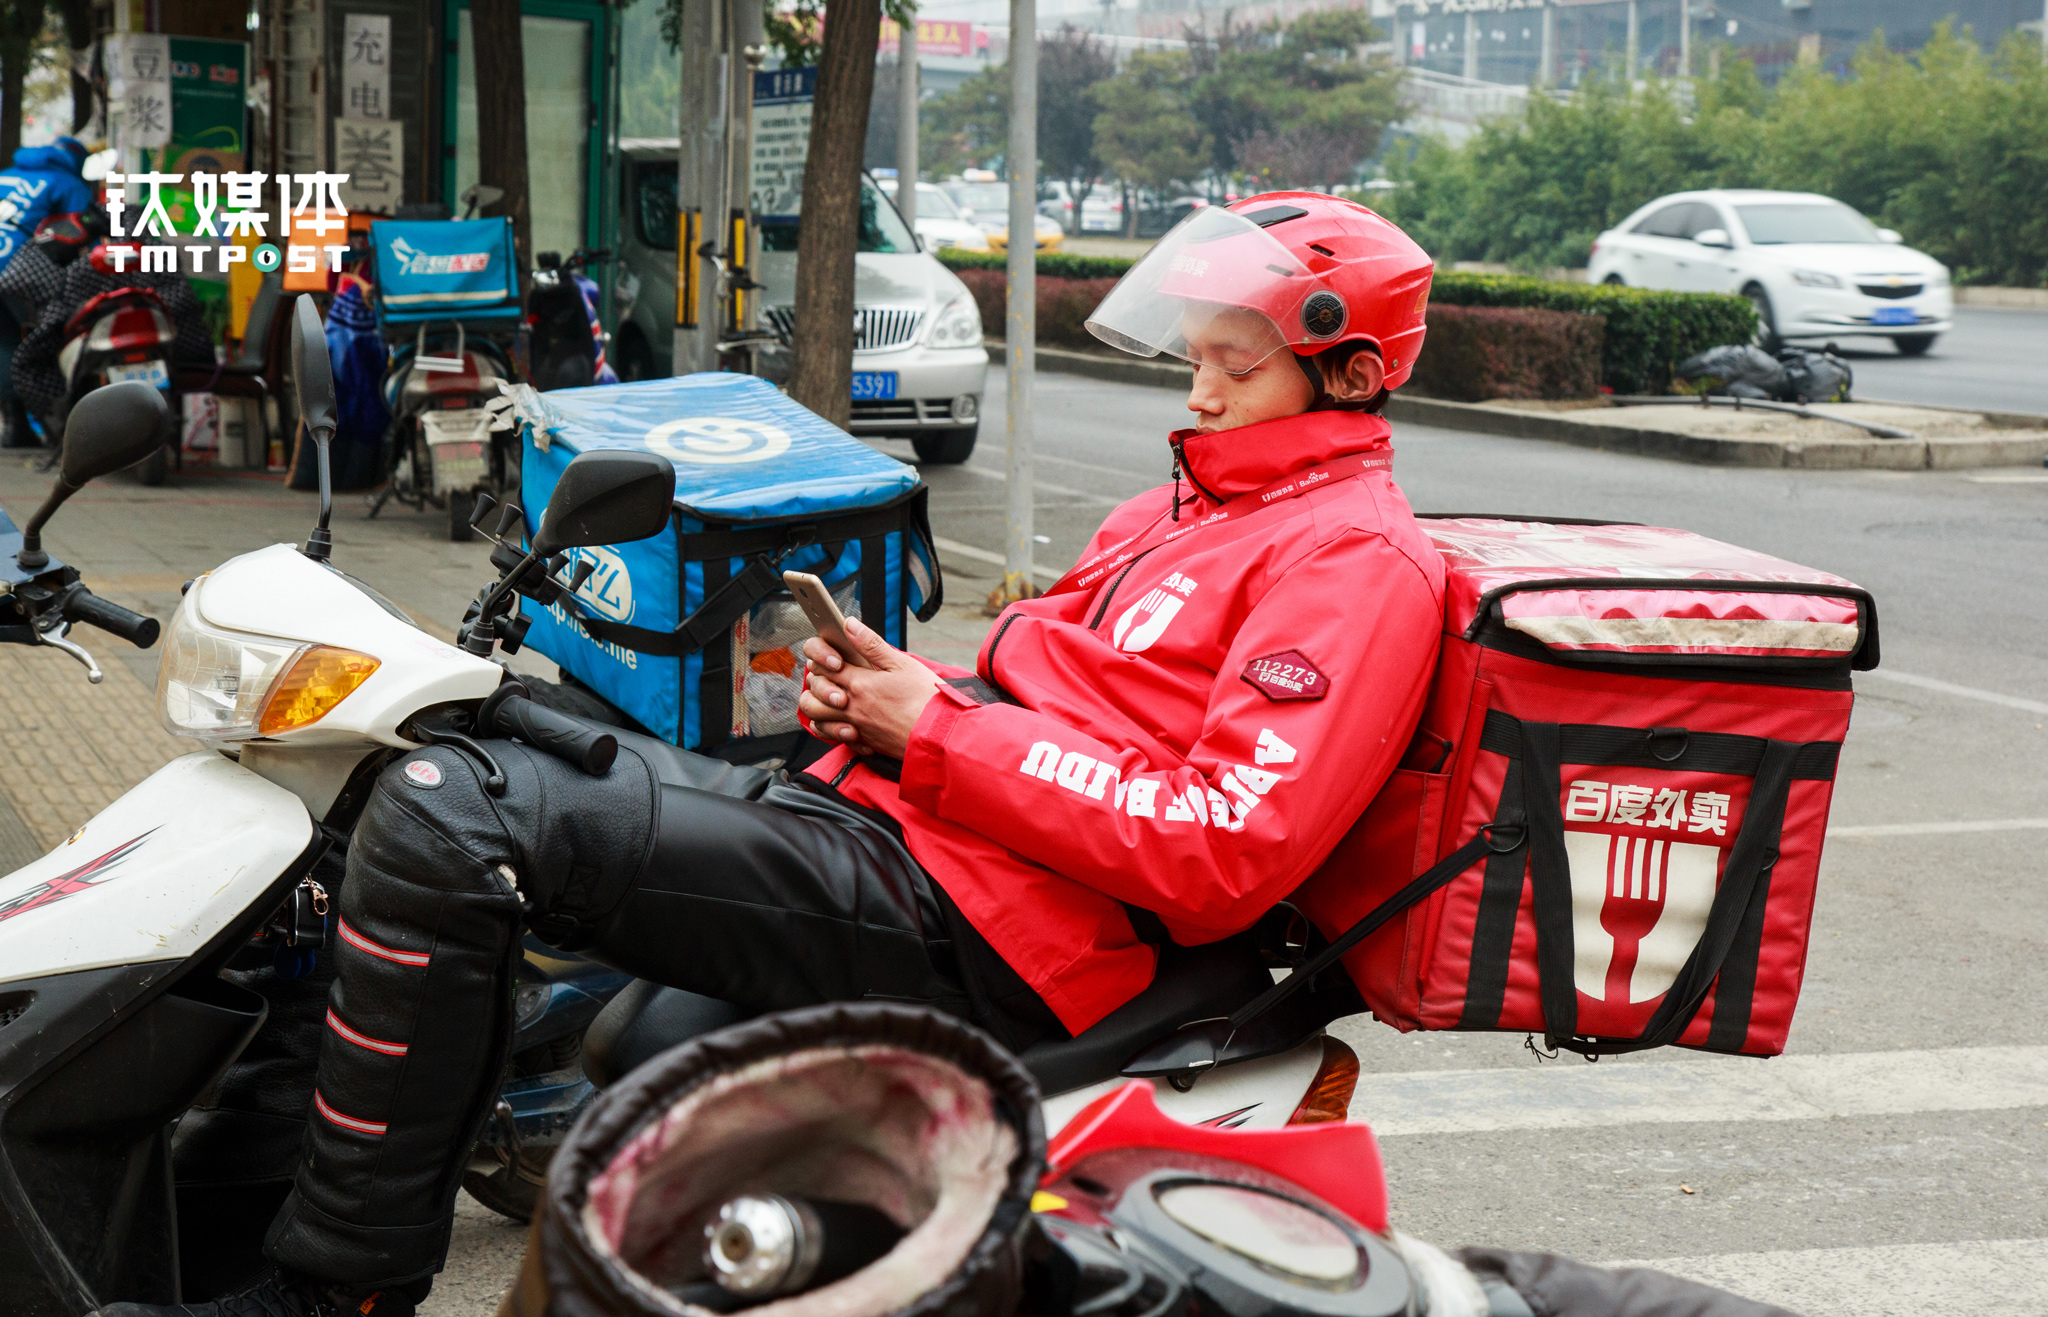 After the peak hours at 2 pm, a deliver who just had some lunch was somehow napping while holding his smartphone. The regular working time for the delivery guys is from 9 am to 10 pm, while the night shift could last until 3 am.